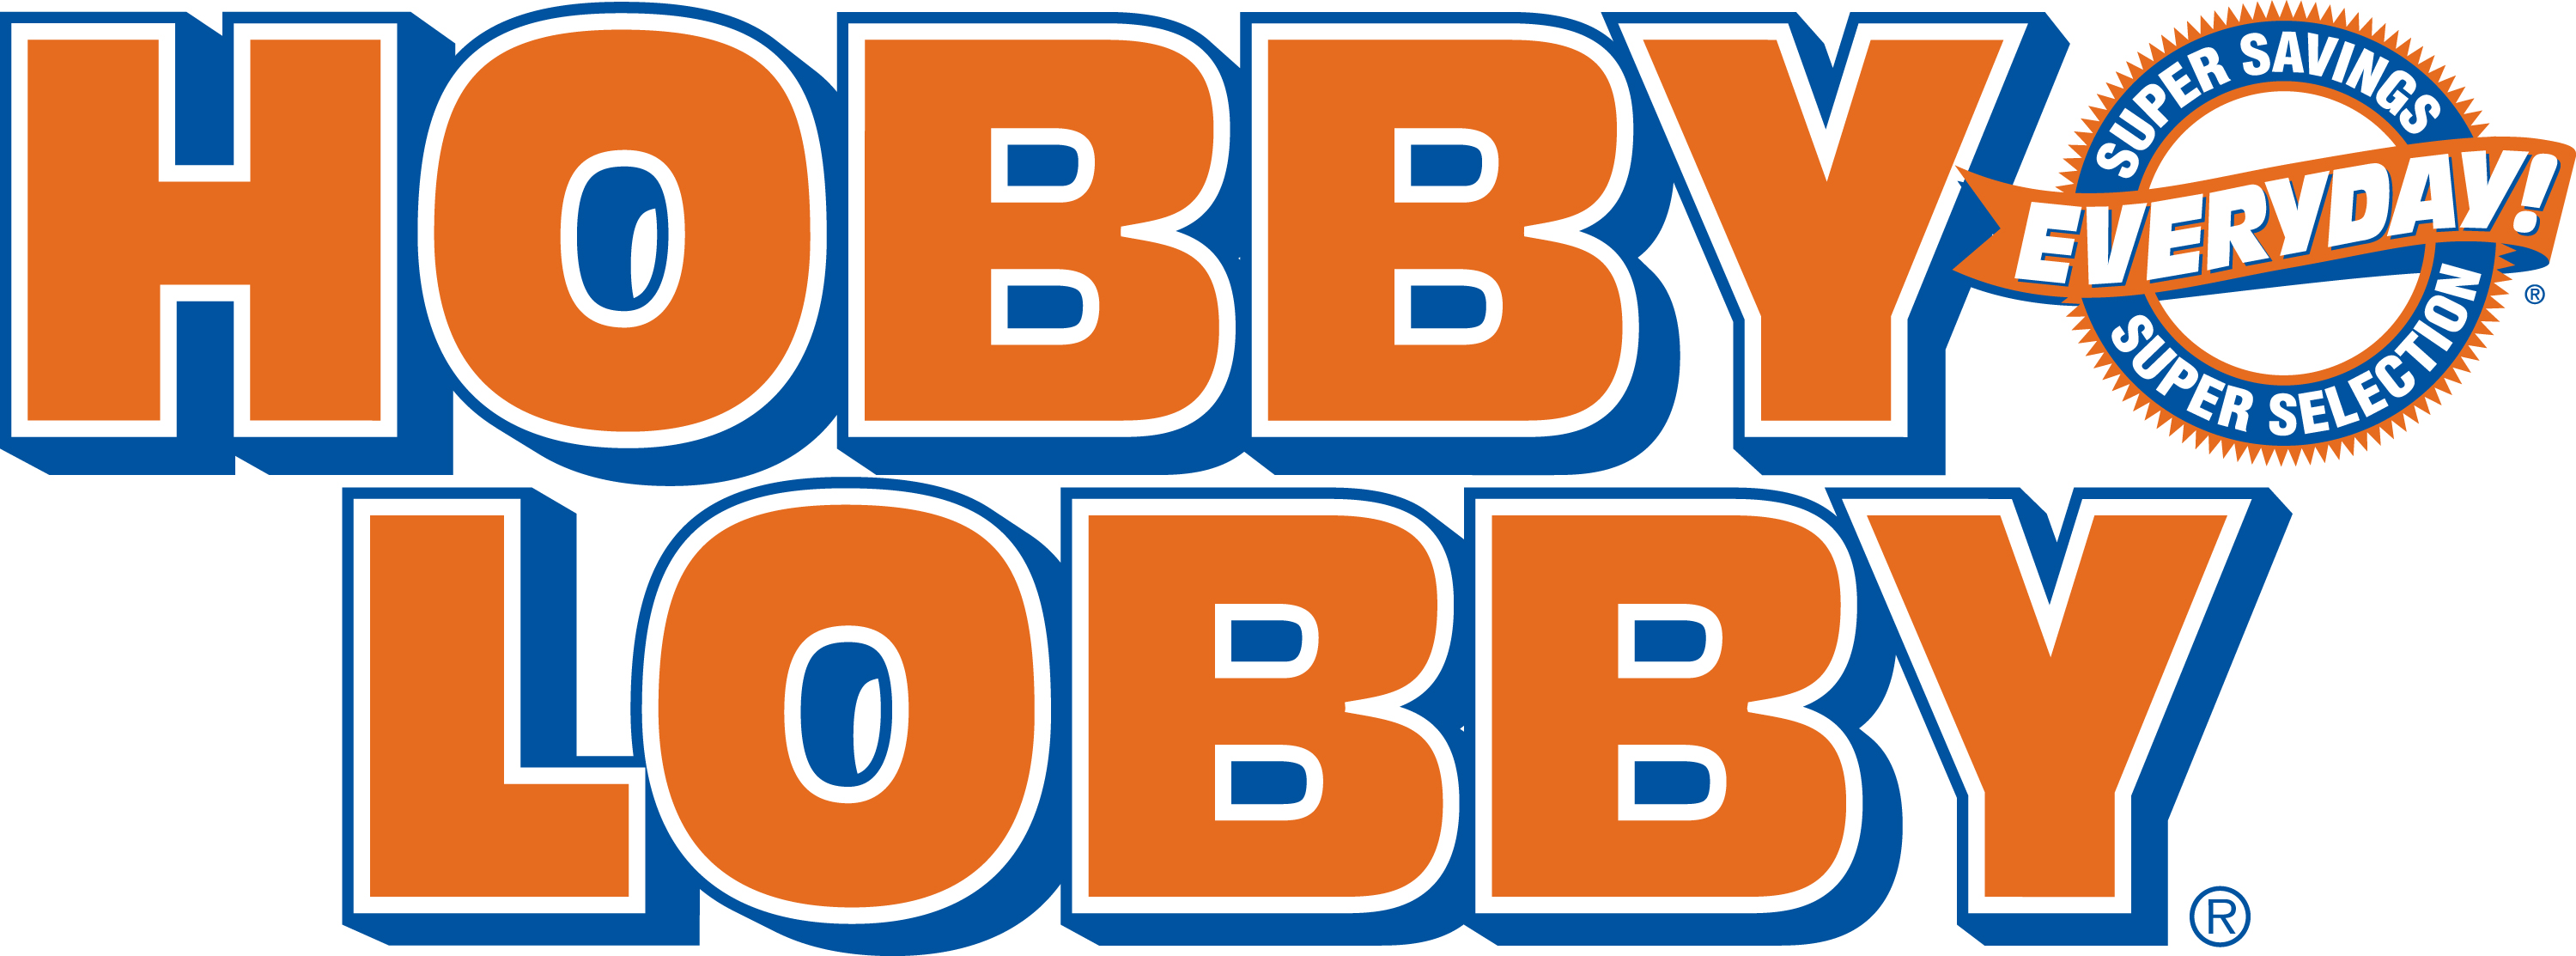 Hobby Lobby Tips from a Former Employee